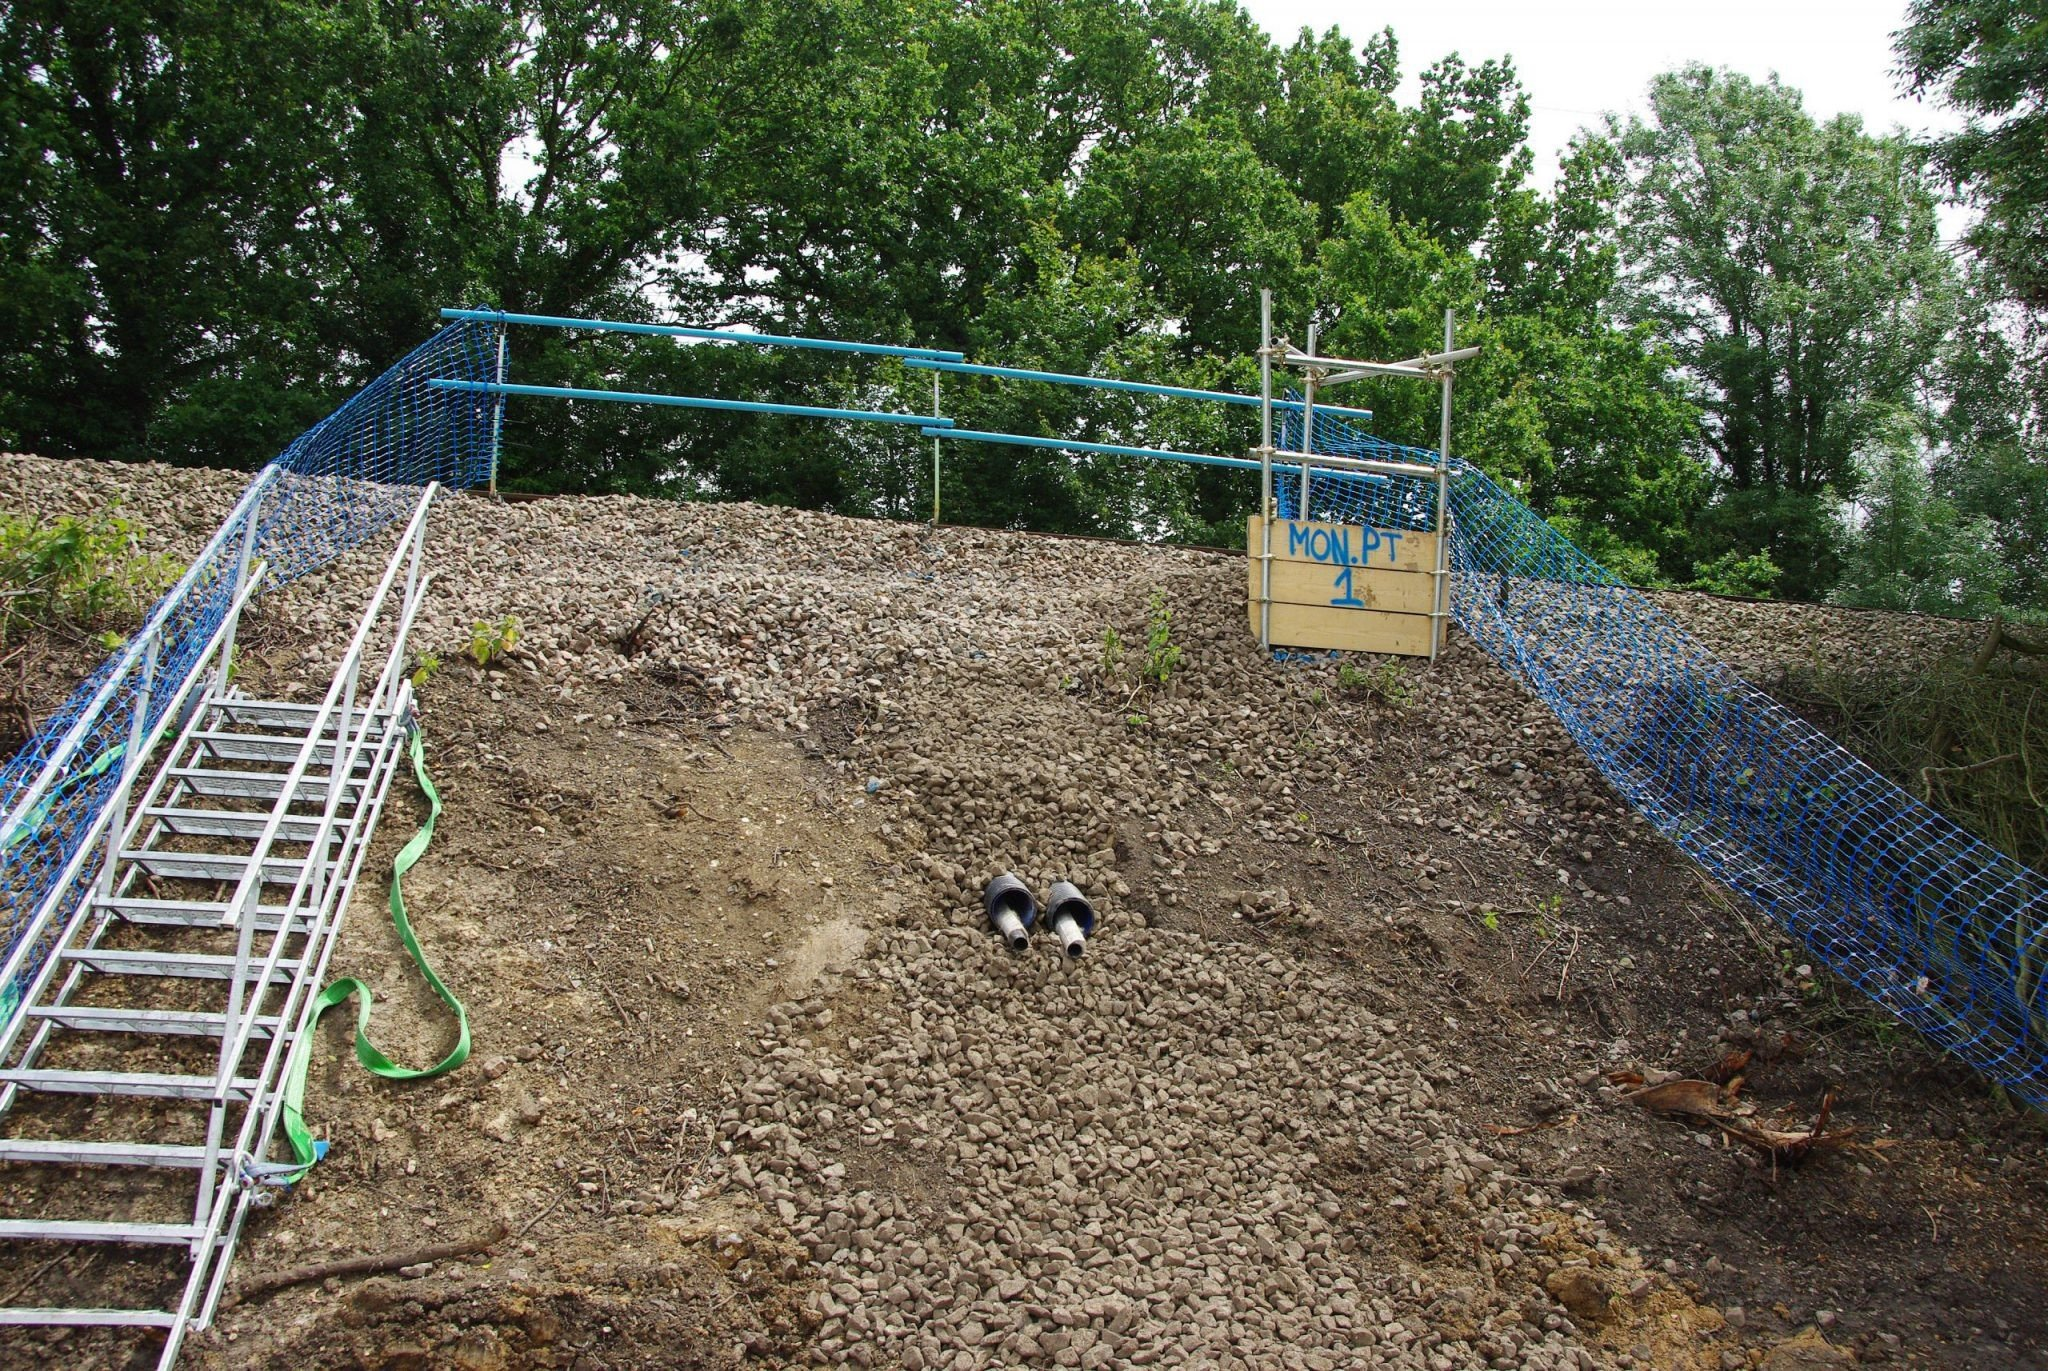 Pound Green pipeline installed with Platipus Plati-drains